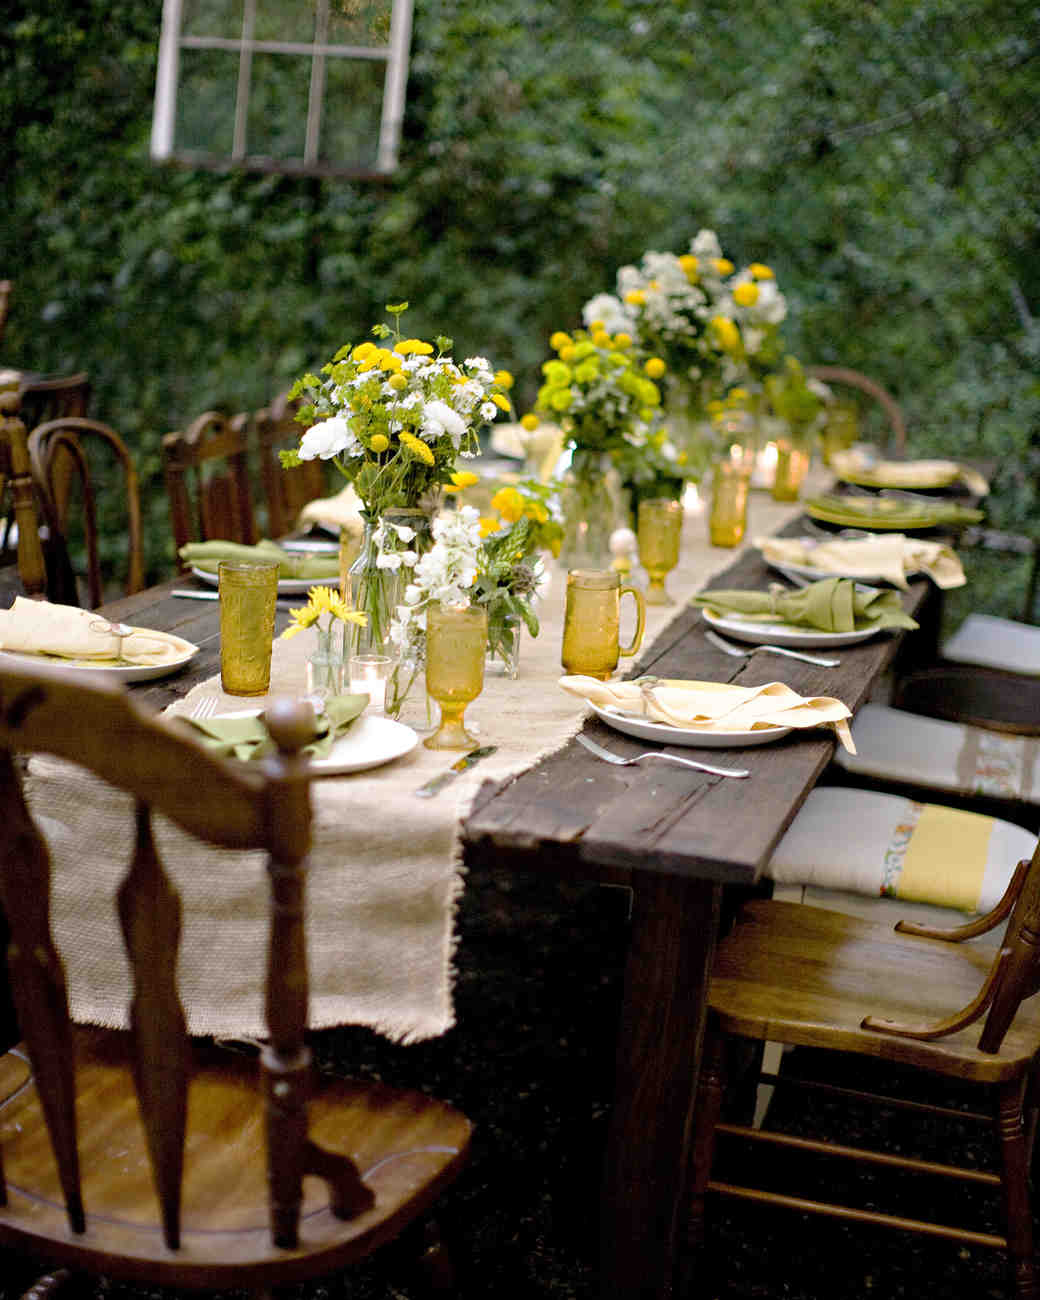 ebay used chairs living room chair covers at target a casual outdoor yellow-and-white wedding in maryland | martha stewart weddings